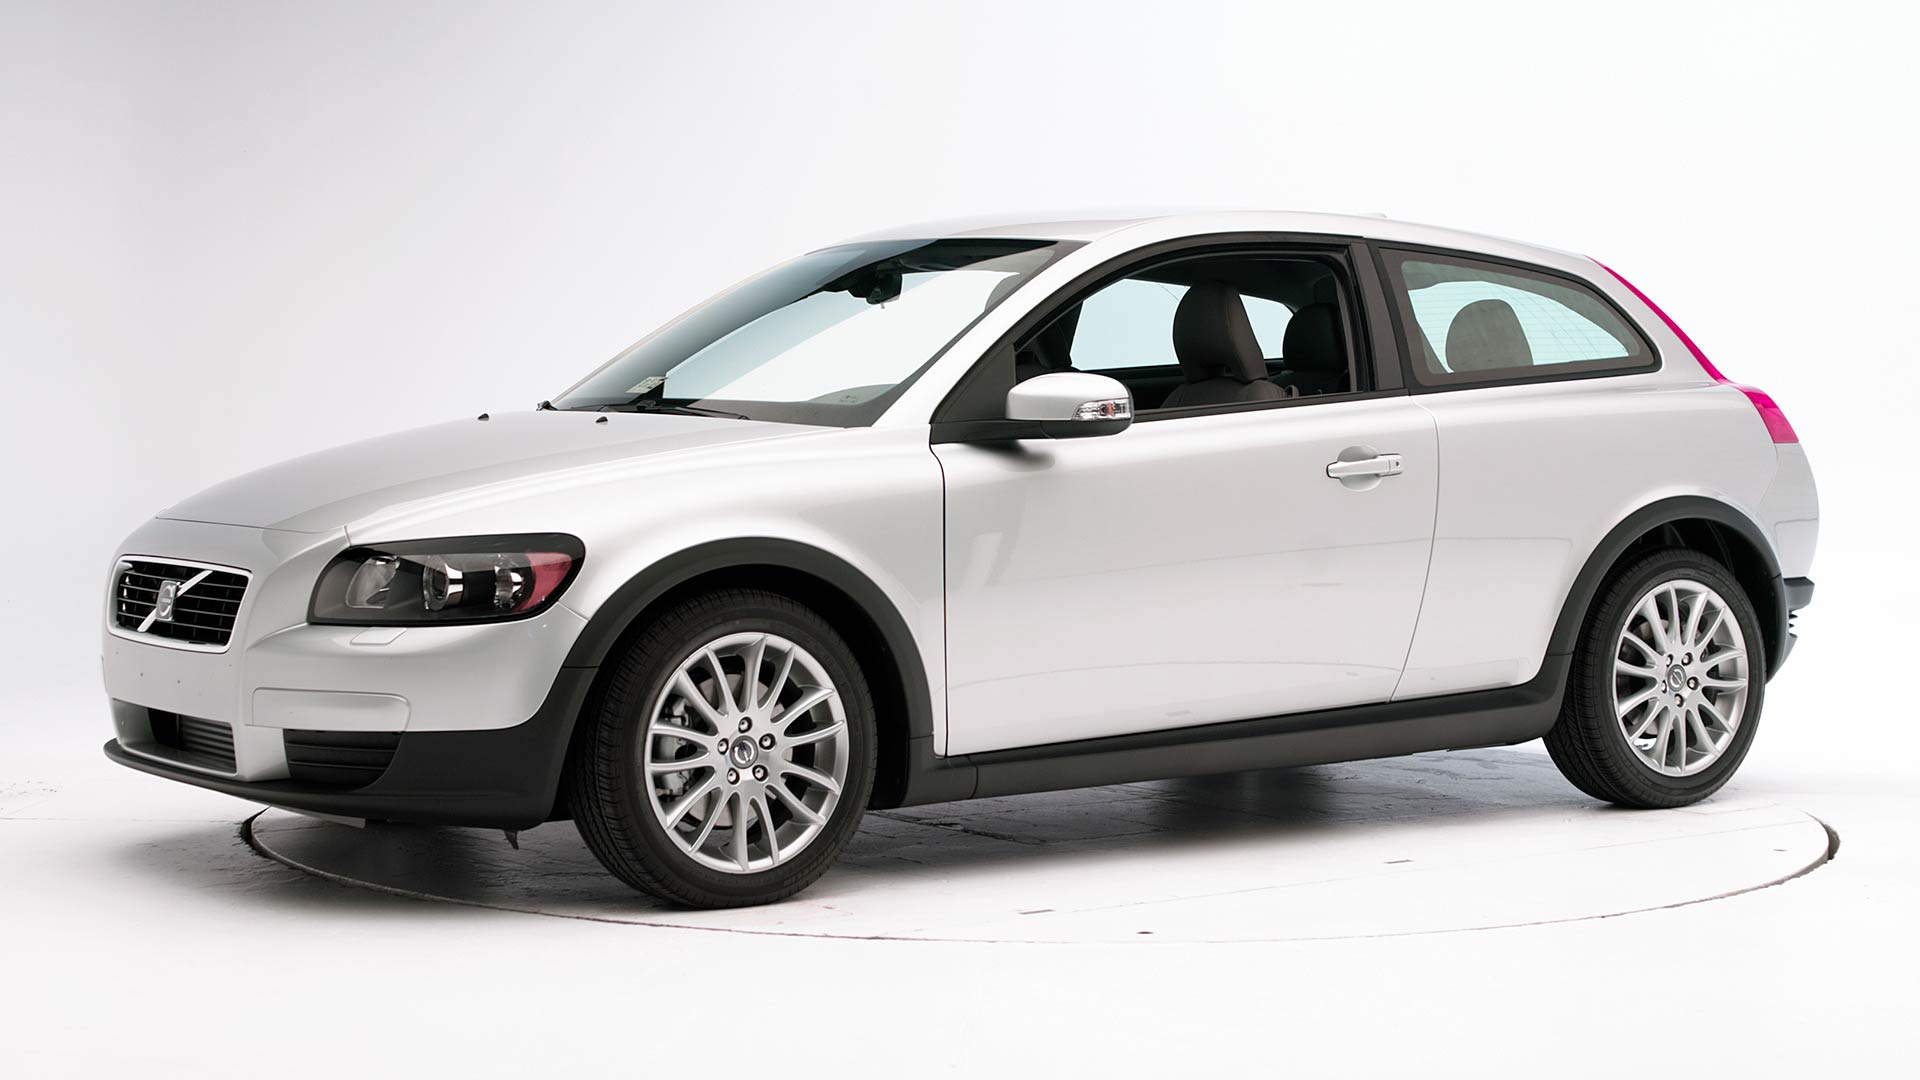 2013 Volvo C30 2-door hatchback